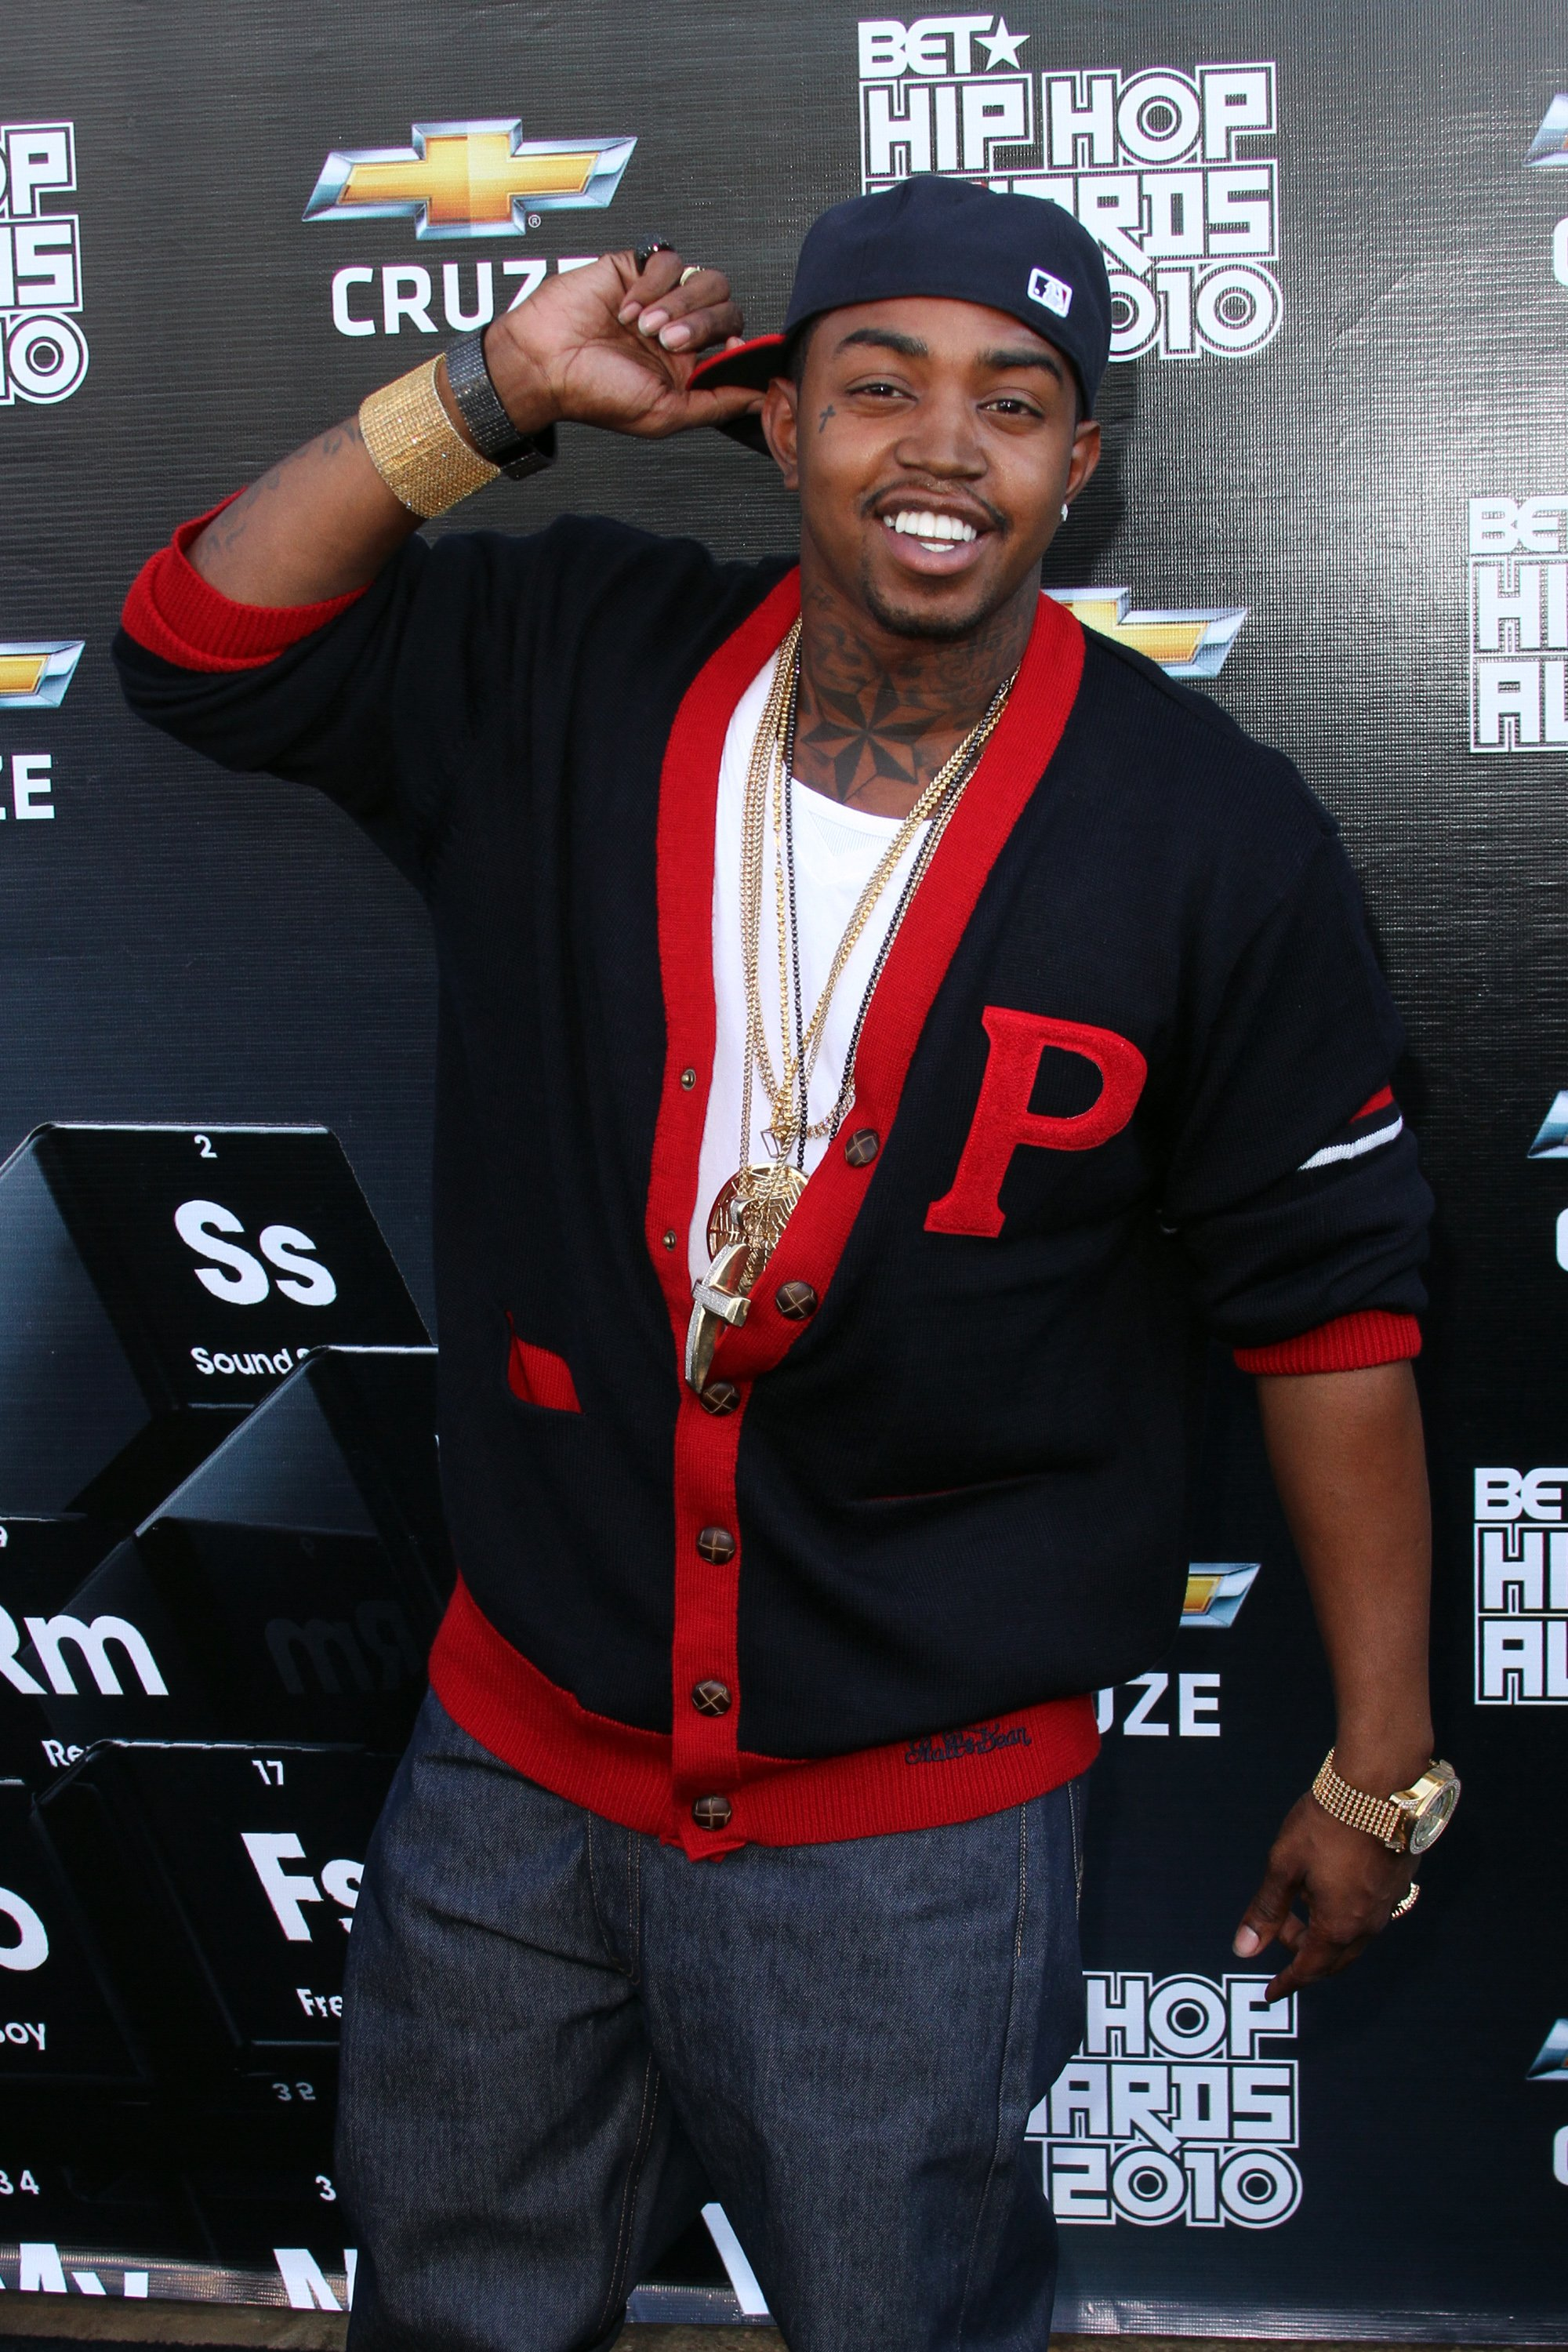 Lil Scrappy at Boisfeuillet Jones Atlanta Civic Center on October 2, 2010.   Photo: Getty Images